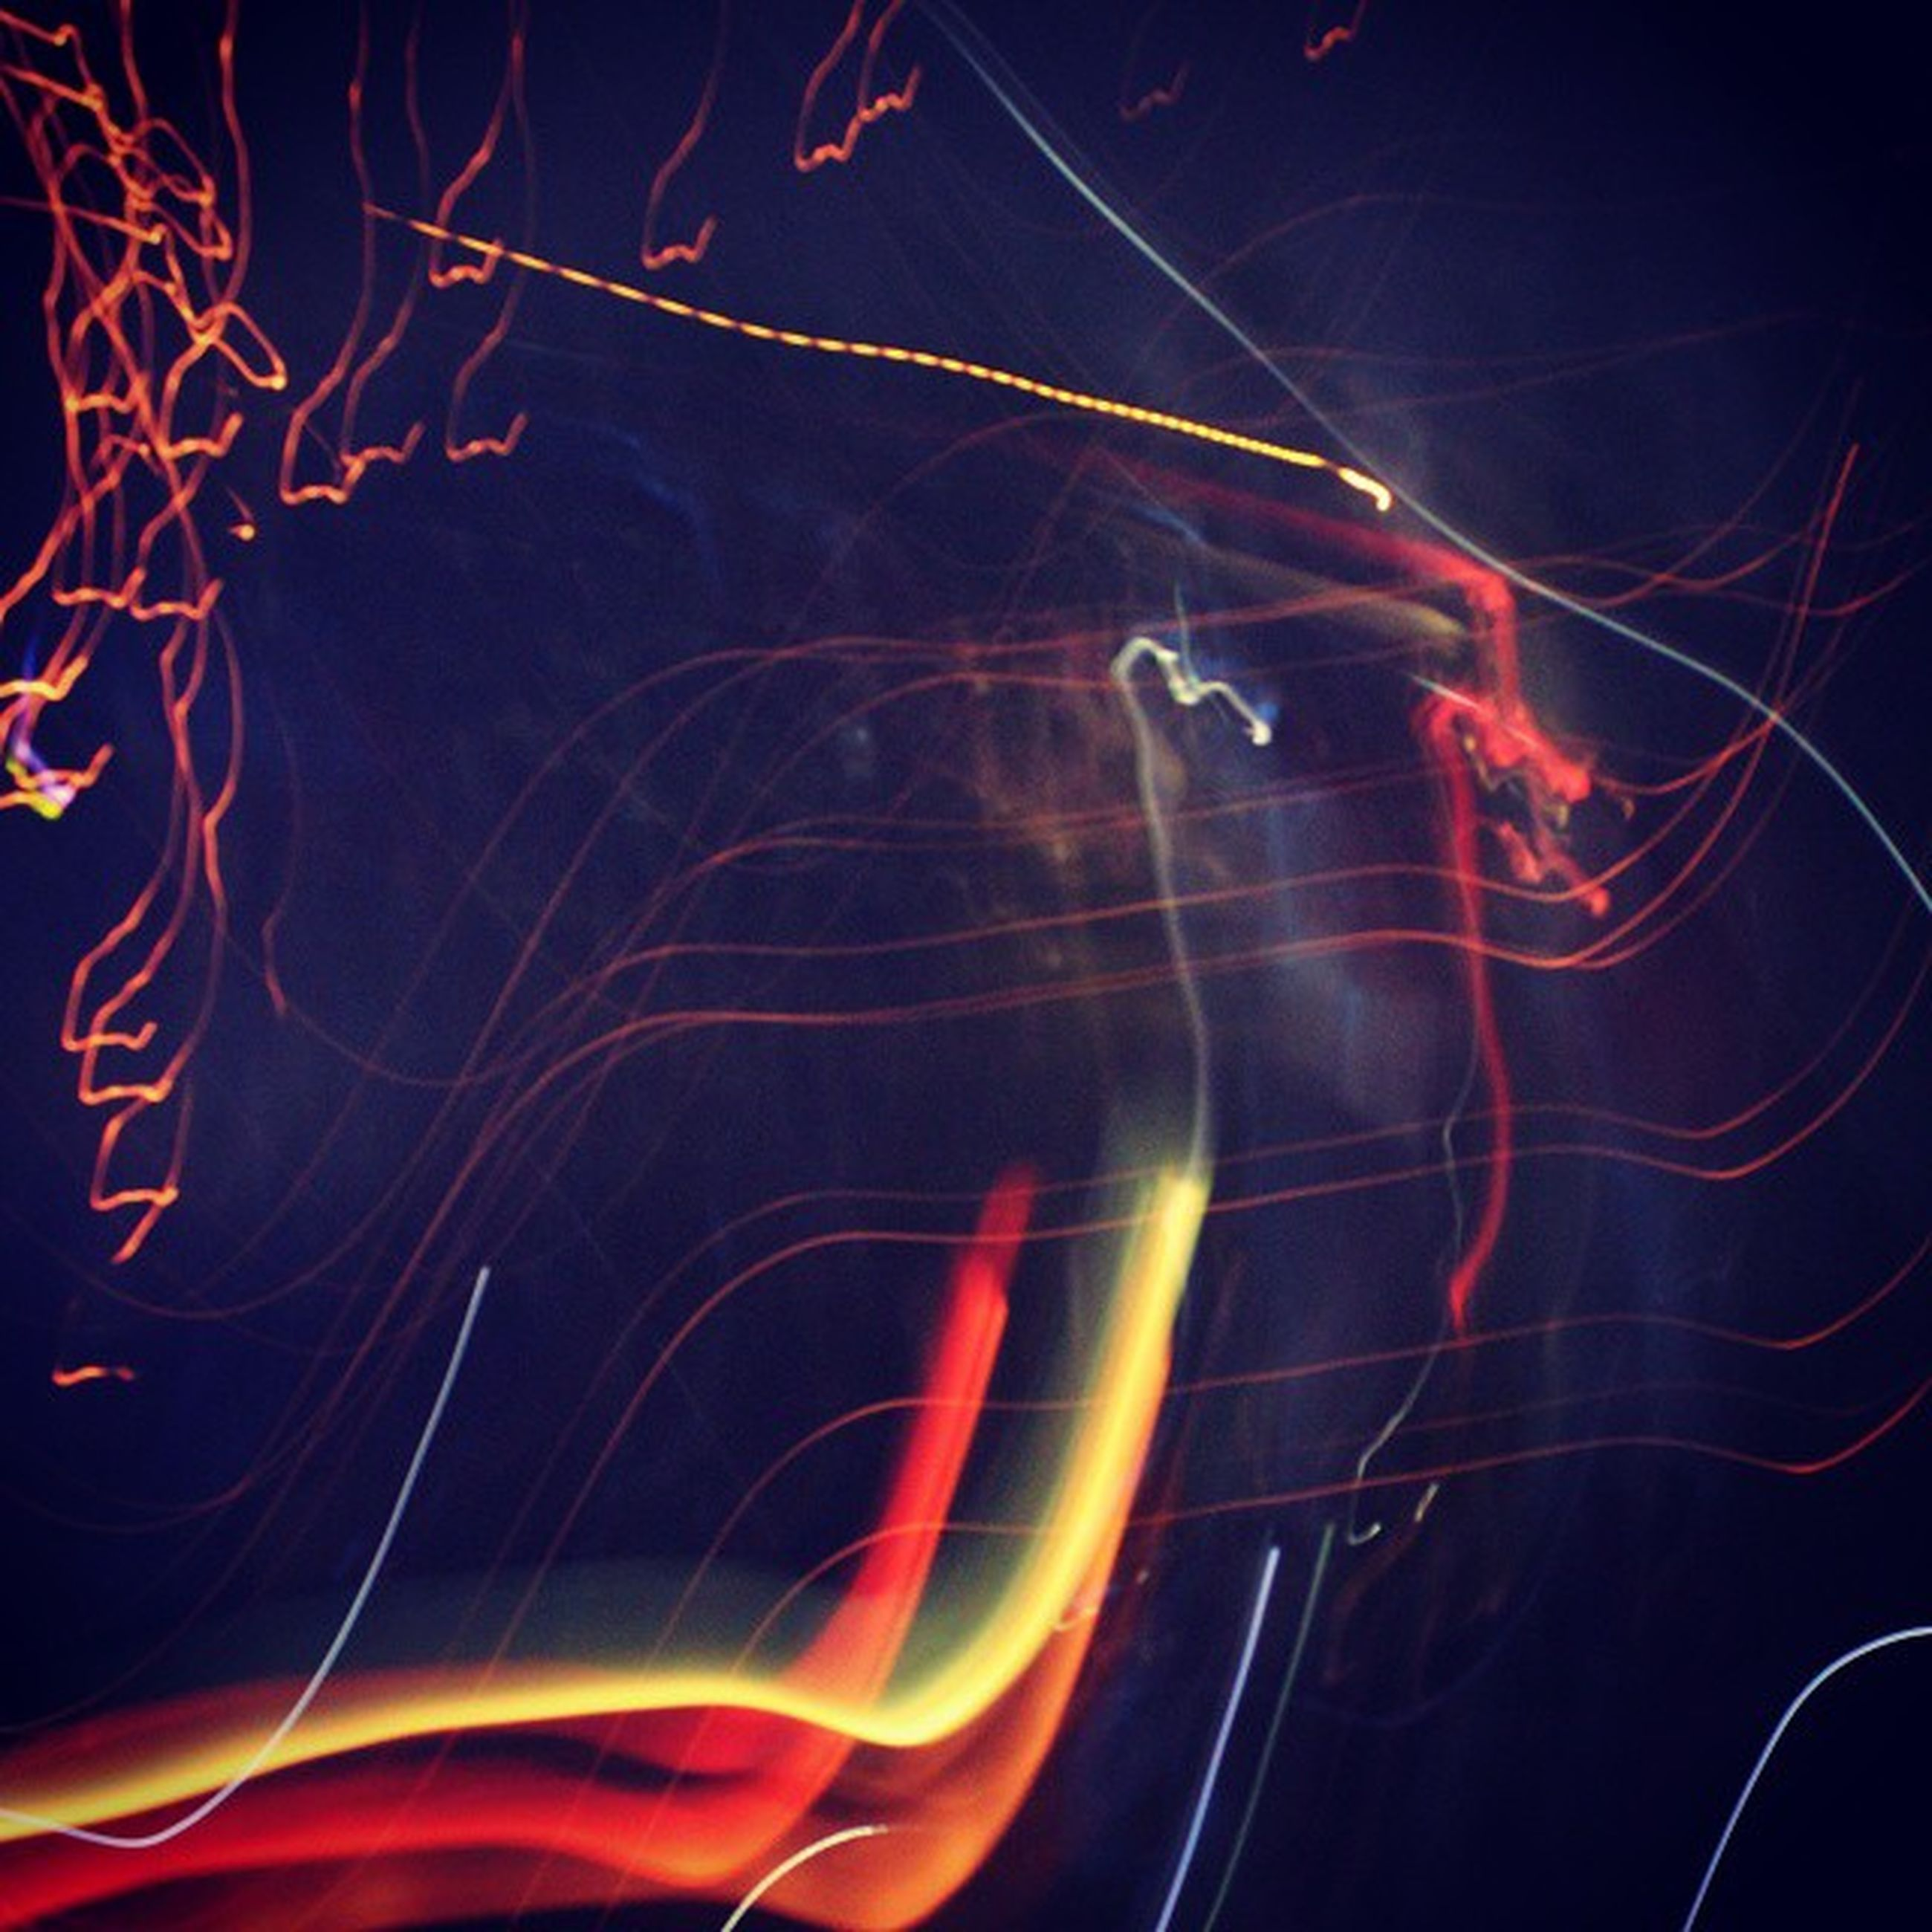 night, abstract, long exposure, backgrounds, illuminated, glowing, full frame, light trail, motion, red, light painting, pattern, multi colored, close-up, orange color, light effect, black background, no people, creativity, ideas